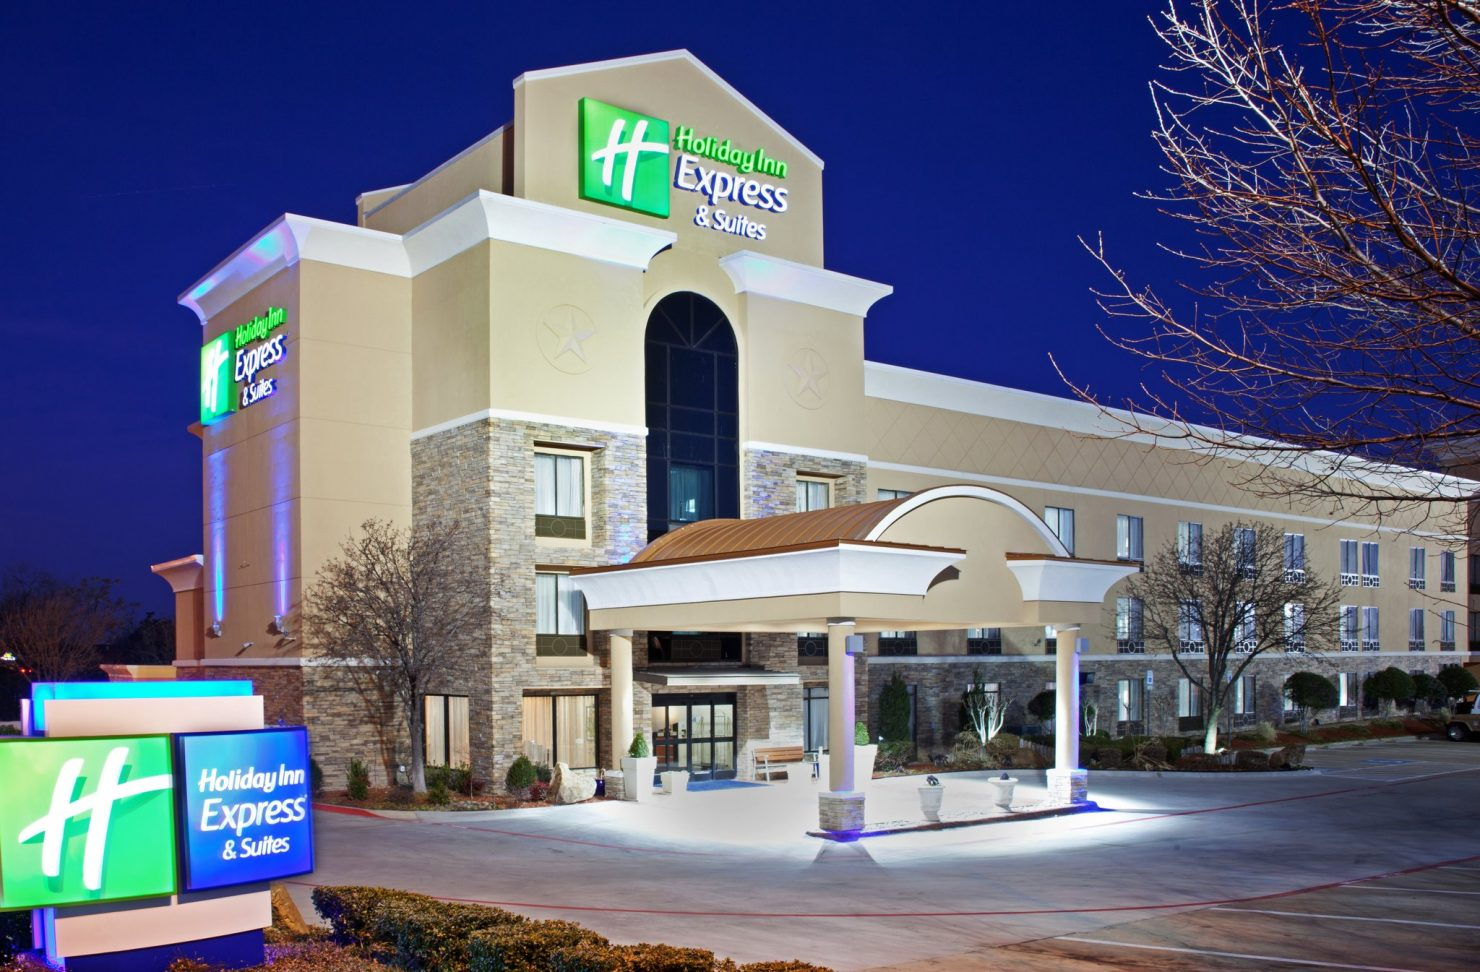 IHG Holiday Inn Express and Suites I-20 Parks Mall, Arlington TX ext